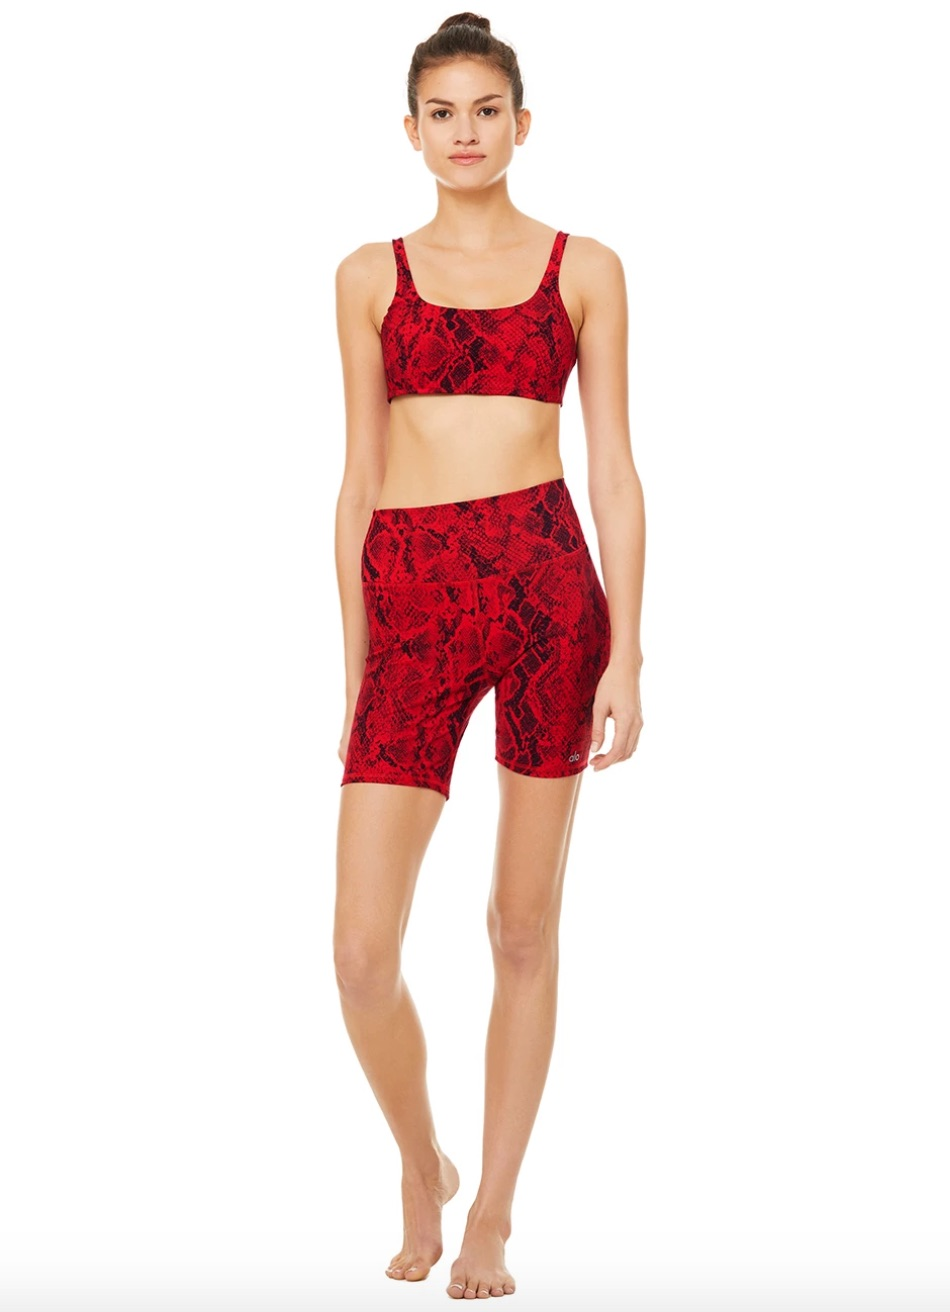 red snakeskin print short and sports bra set from alo yoga